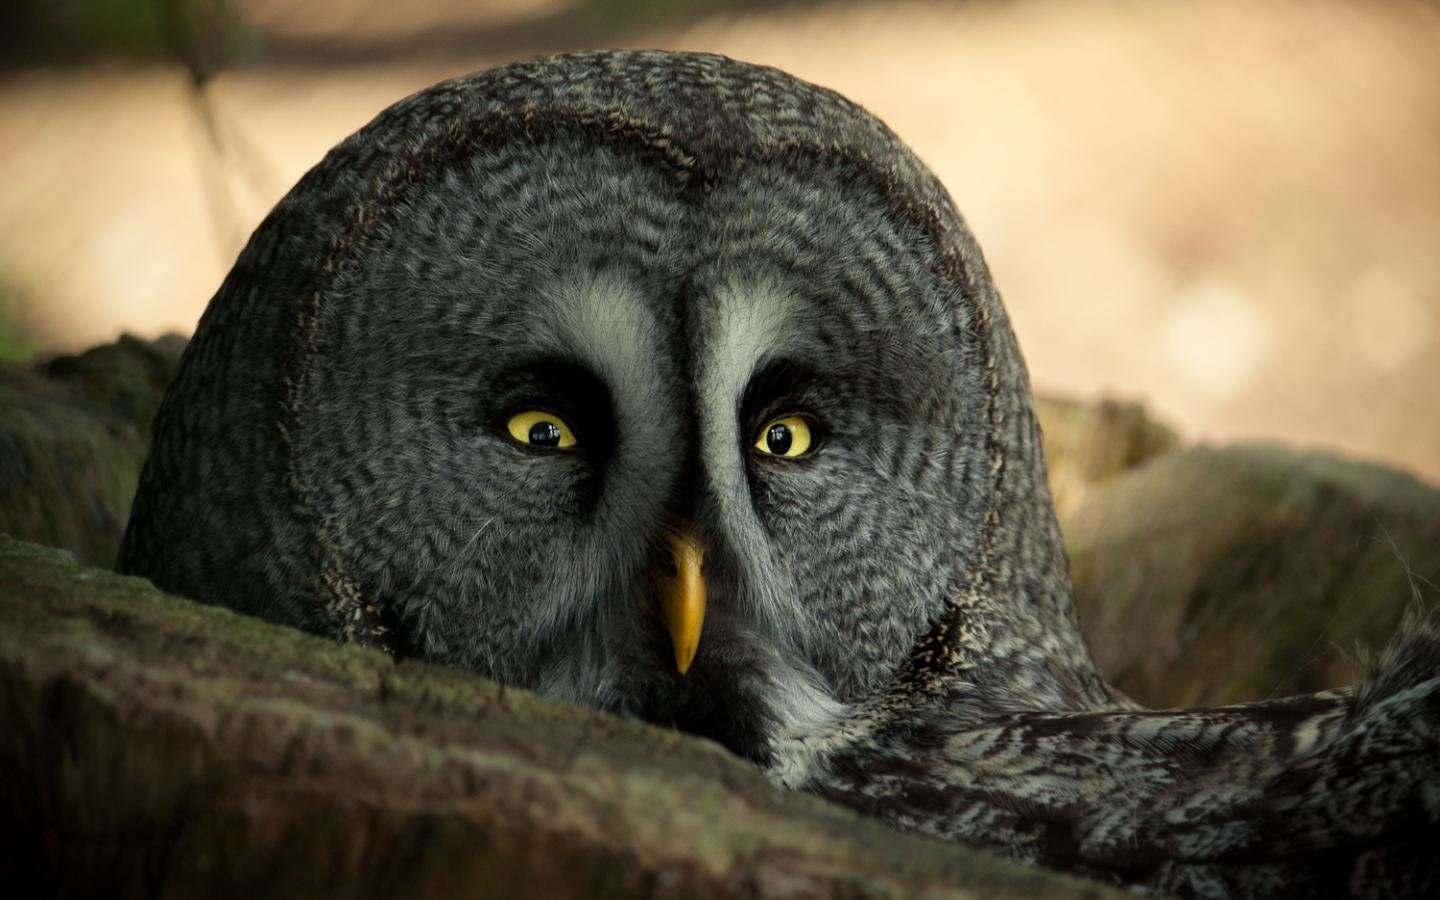 Awesome Great Grey Owl free background ID:235132 for hd 1440x900 desktop